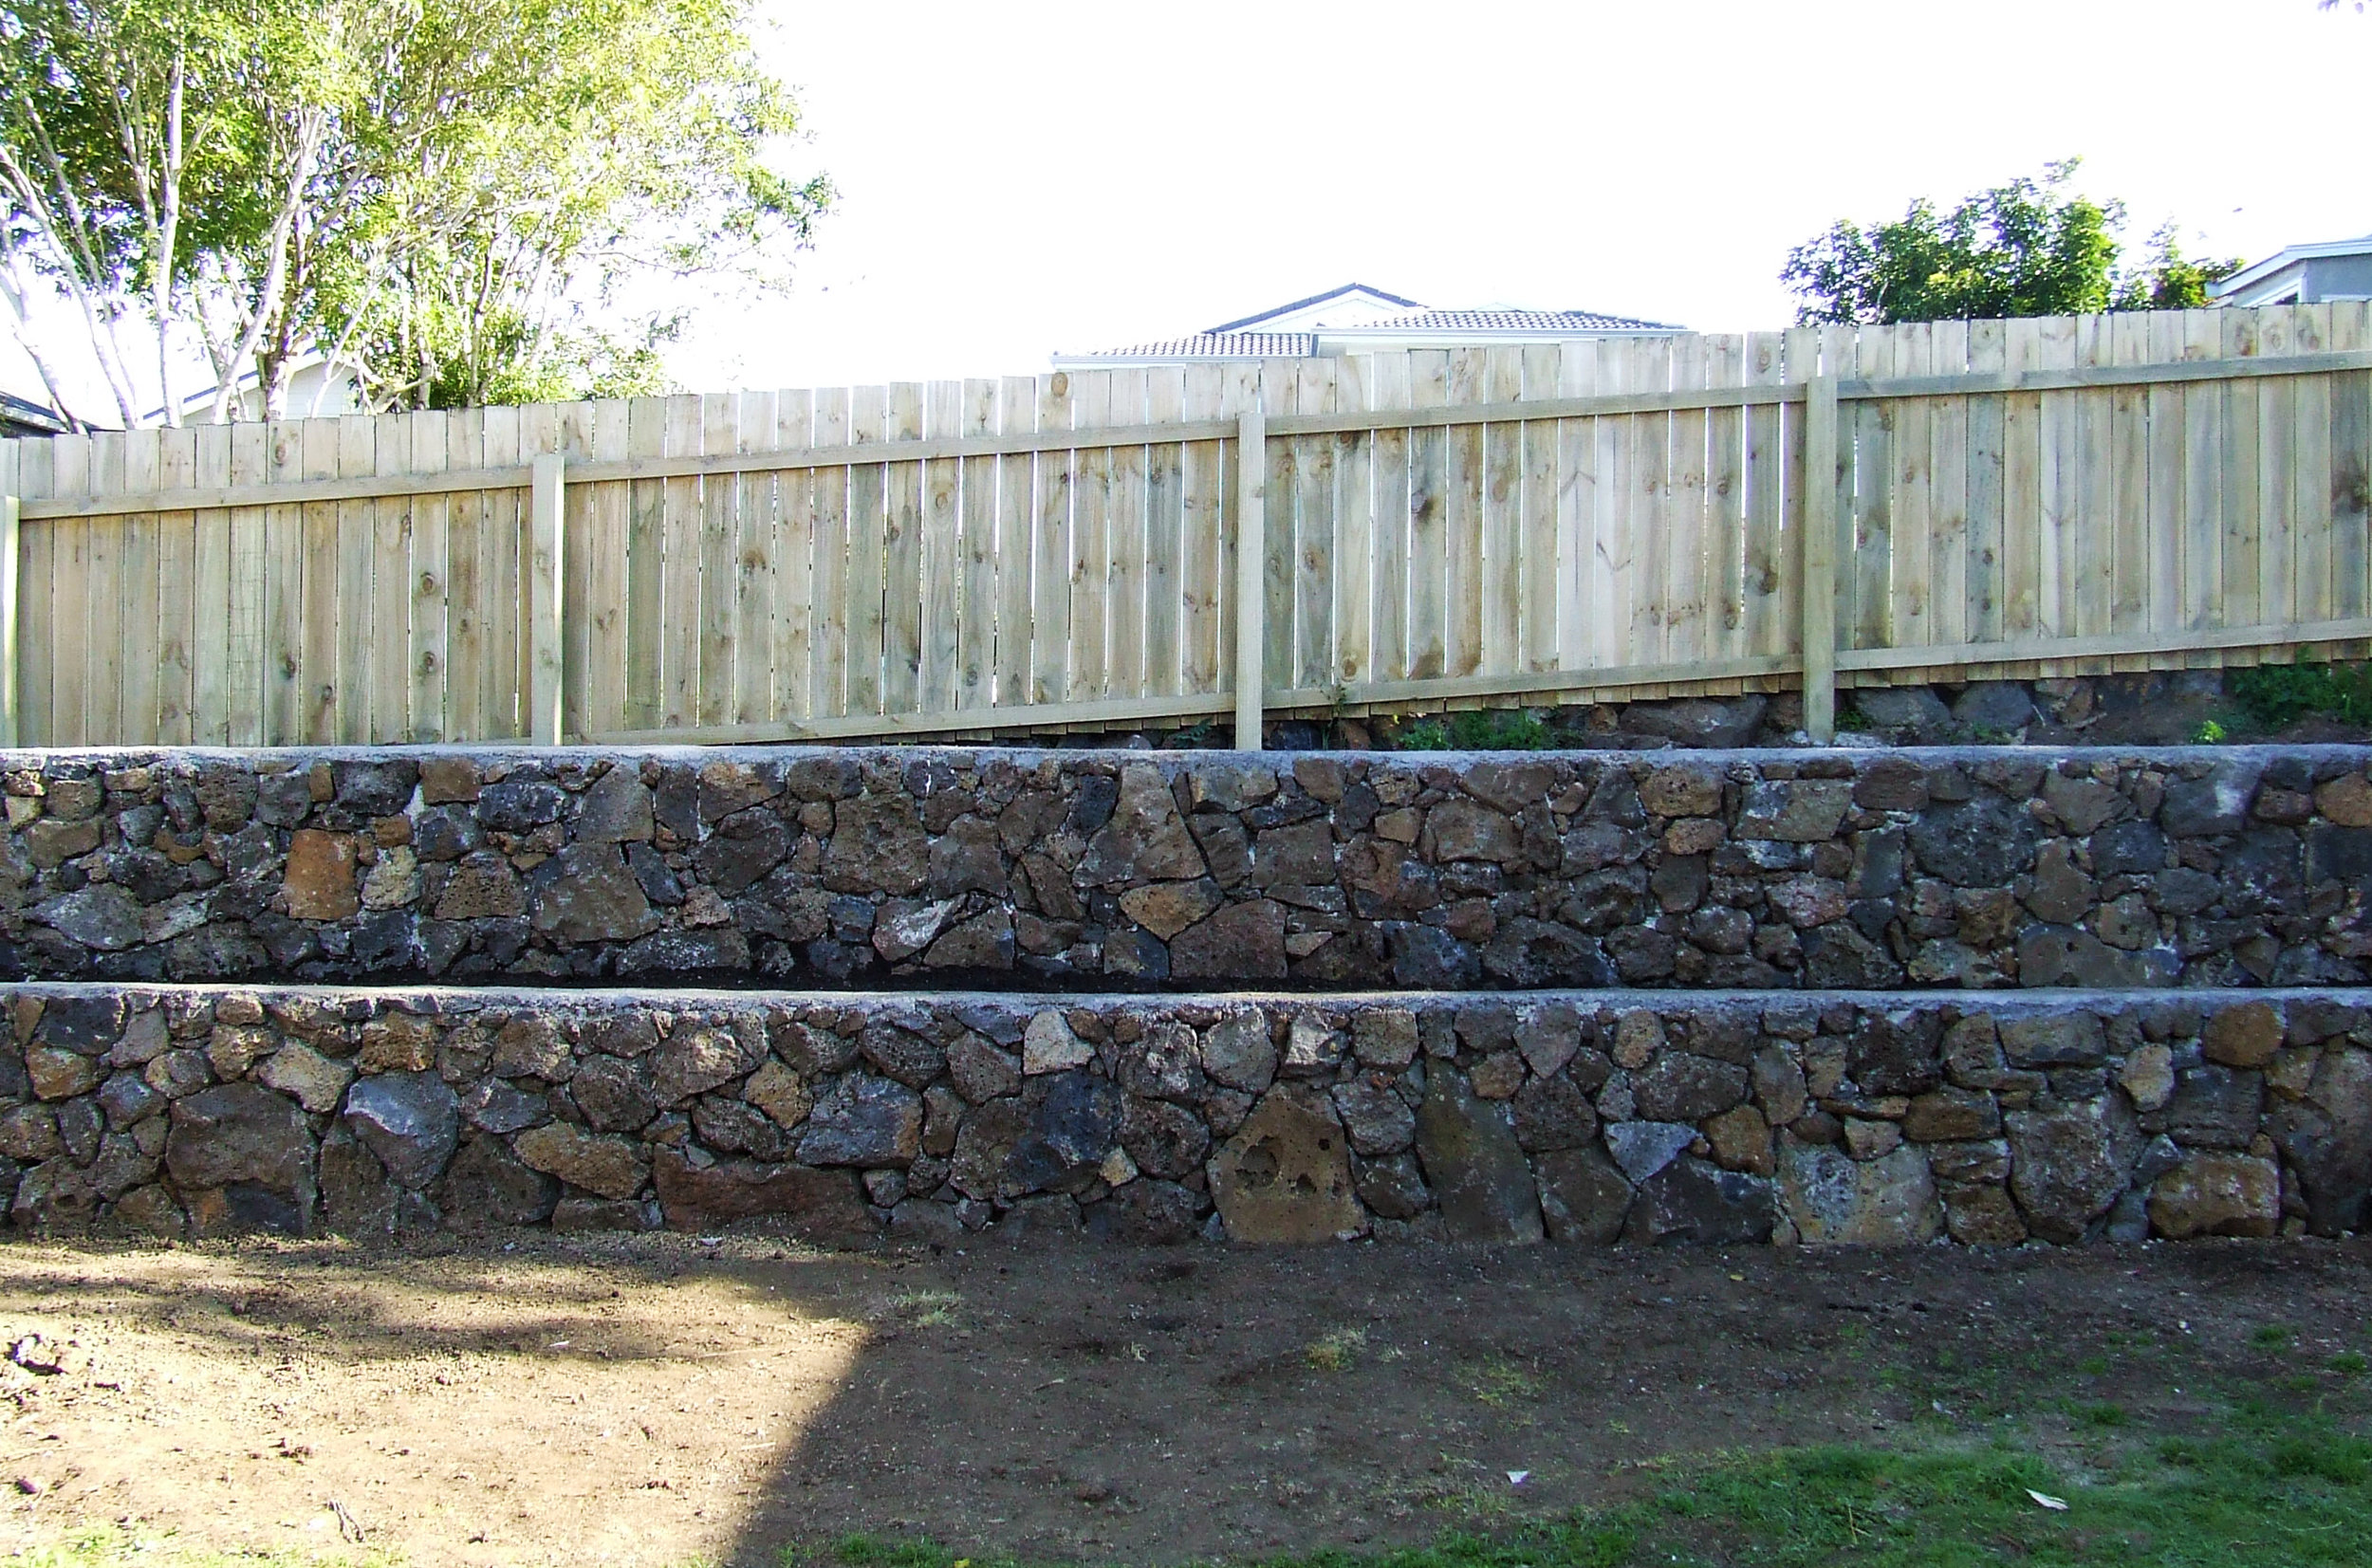 (20) Natural rock retaining wall with timber fence